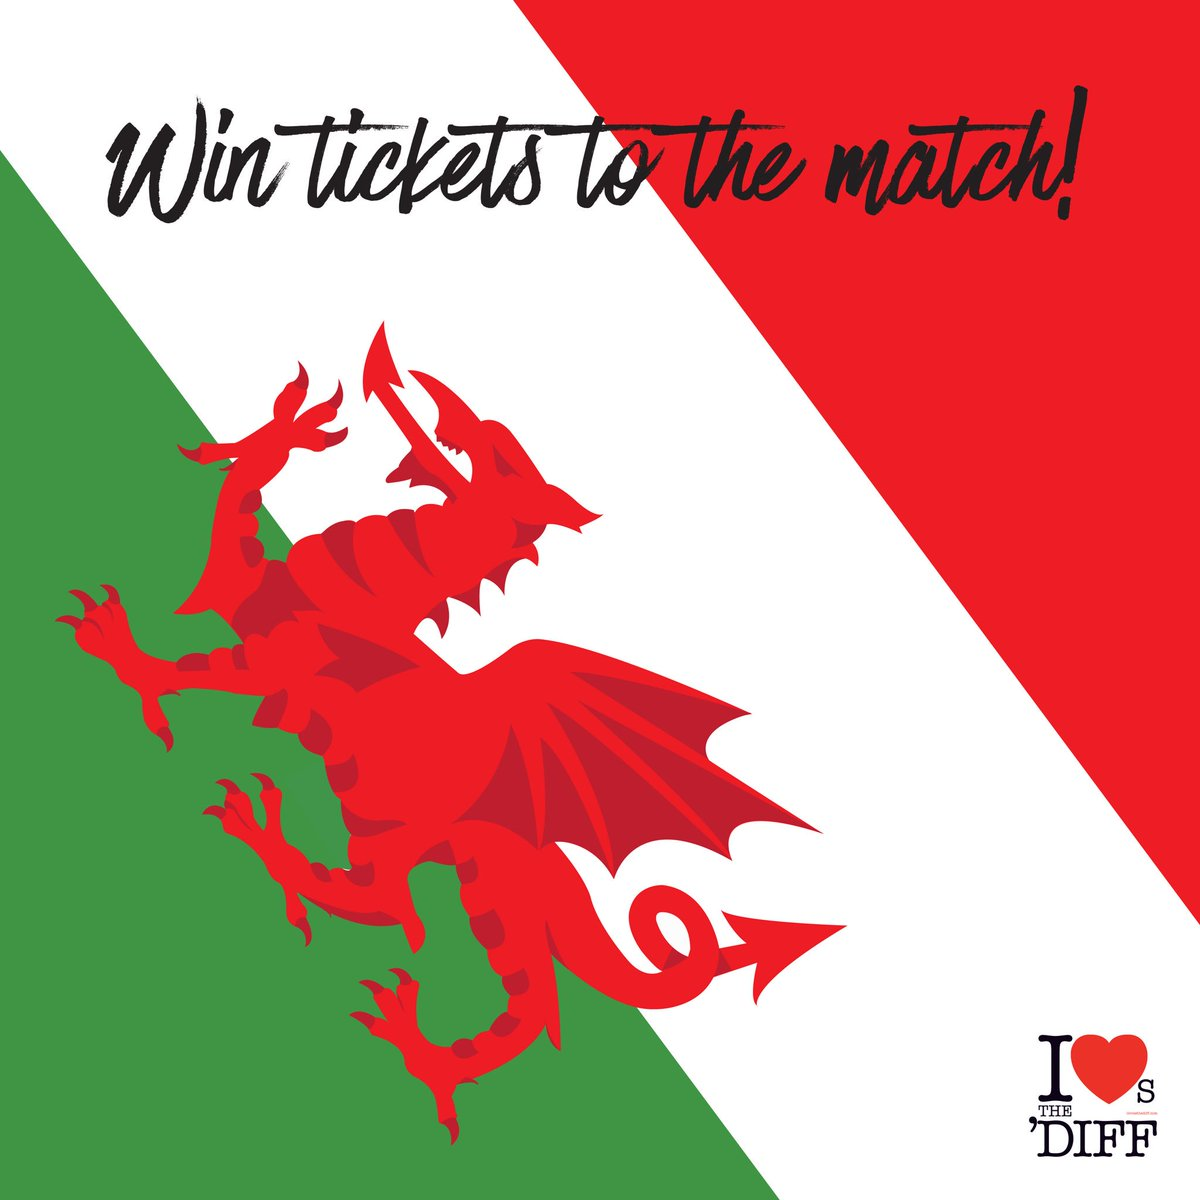 Wanna chance to win 2 tickets to #WALvITA @principalitysta courtesy of @SWALEC? Just retweet to enter! #ssereward https://t.co/MkPMgkZbw5